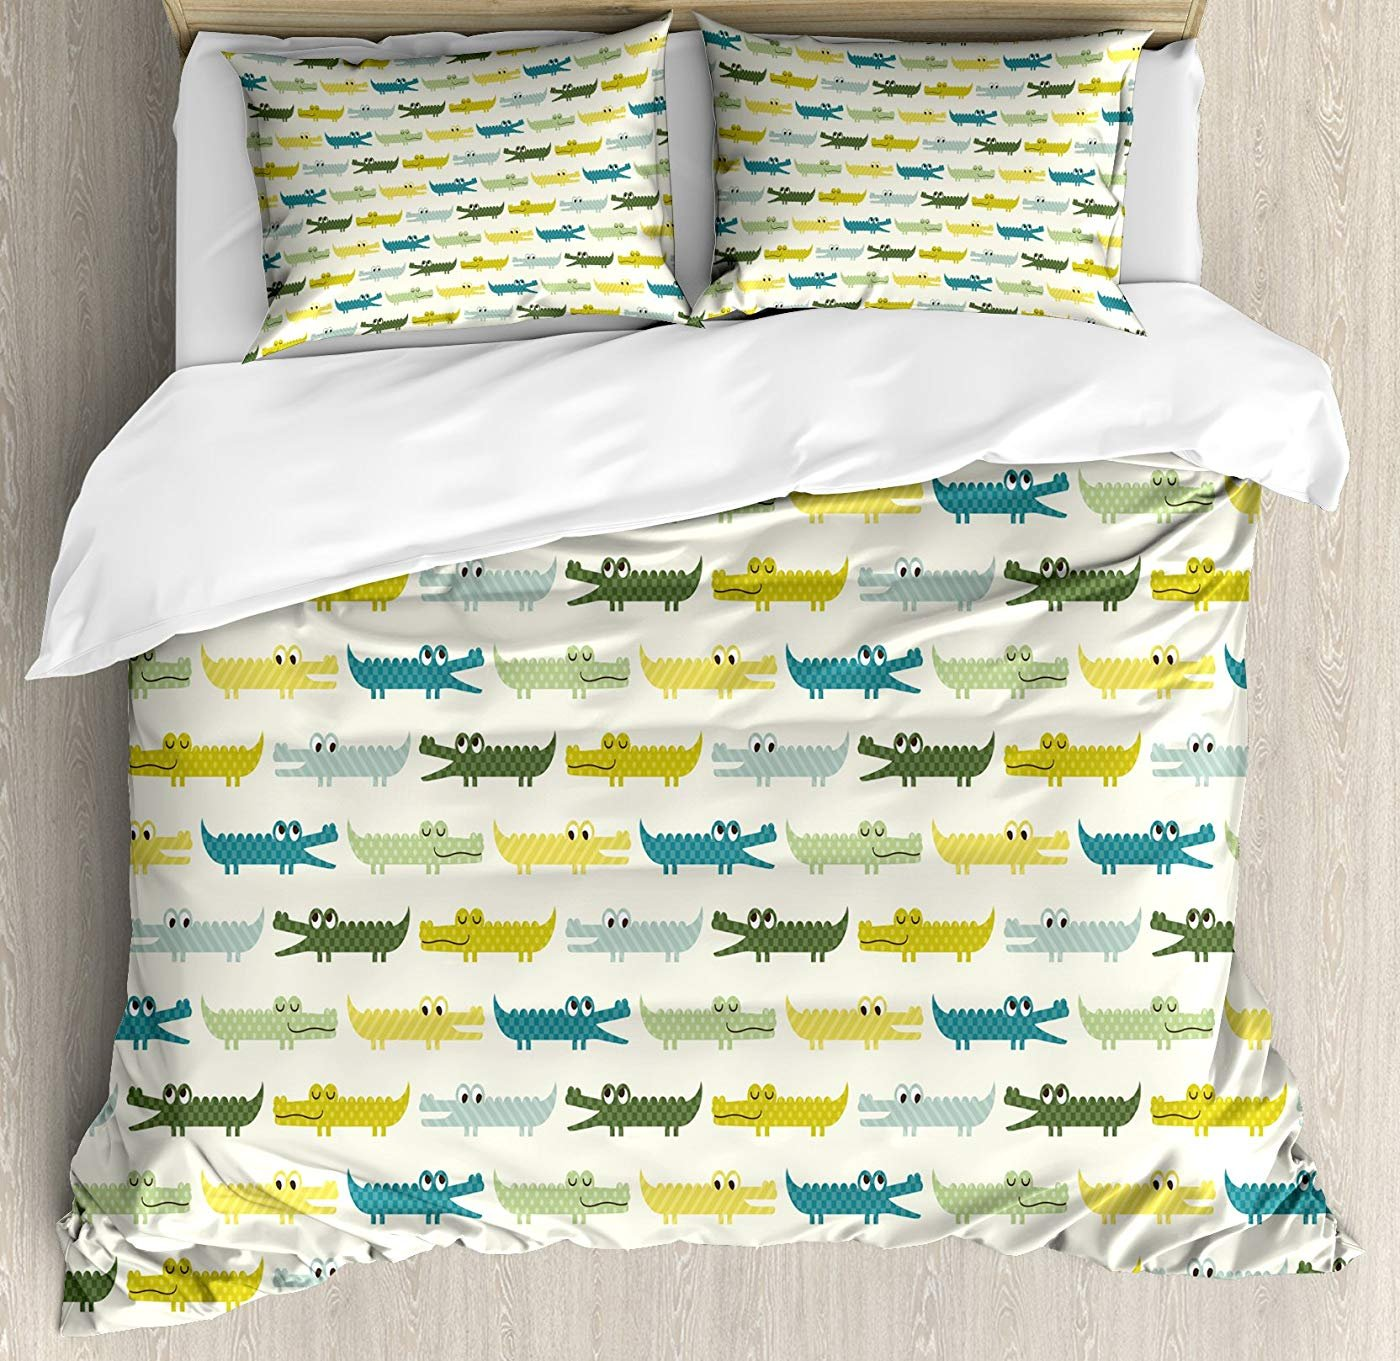 Multi 4 Queen Peacock Duvet Cover Set Twin Size, Peacock Feather Illustration in Simplistic Artistic Style Wild Nature Life Print,Lightweight Microfiber Duvet Cover Sets, Green bluee